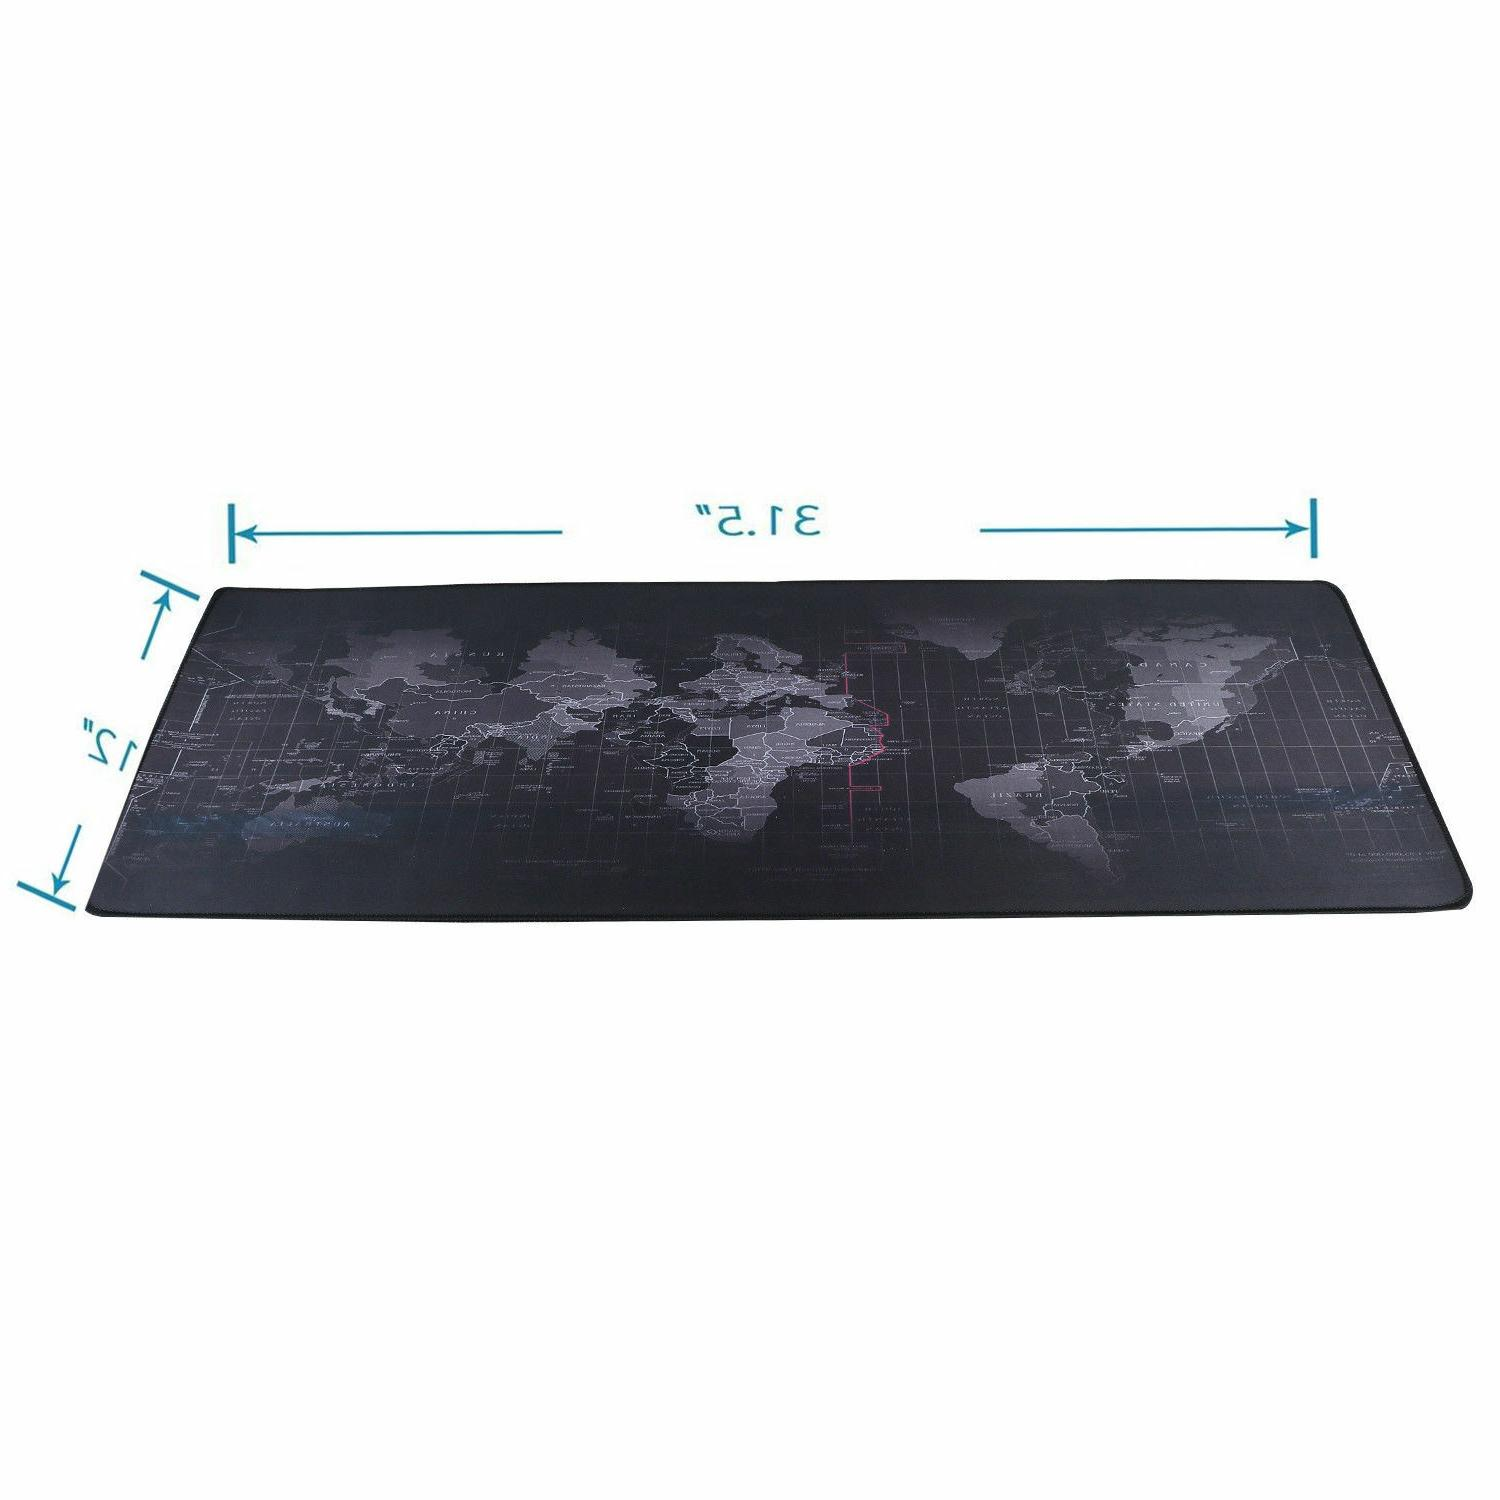 AmazingG Extended Mouse Pad Keyboard 800MM 300MM